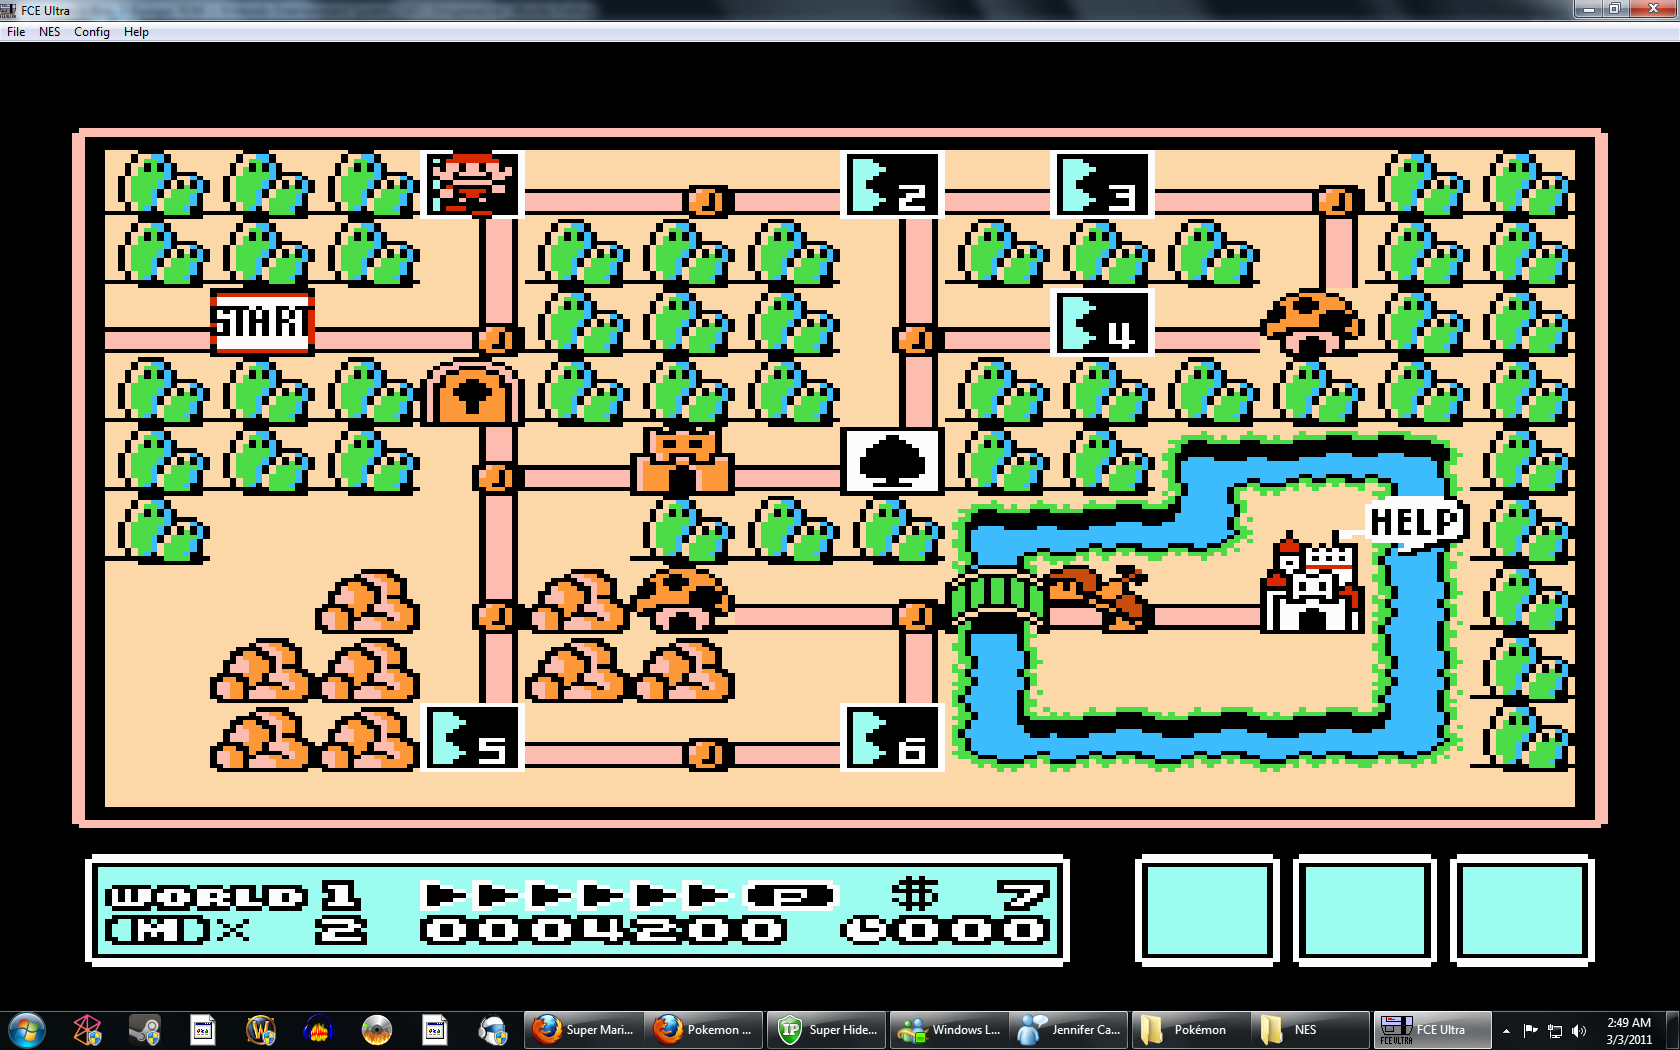 Super Mario Bros  3 (USA) ROM [View All Descriptions] < NES